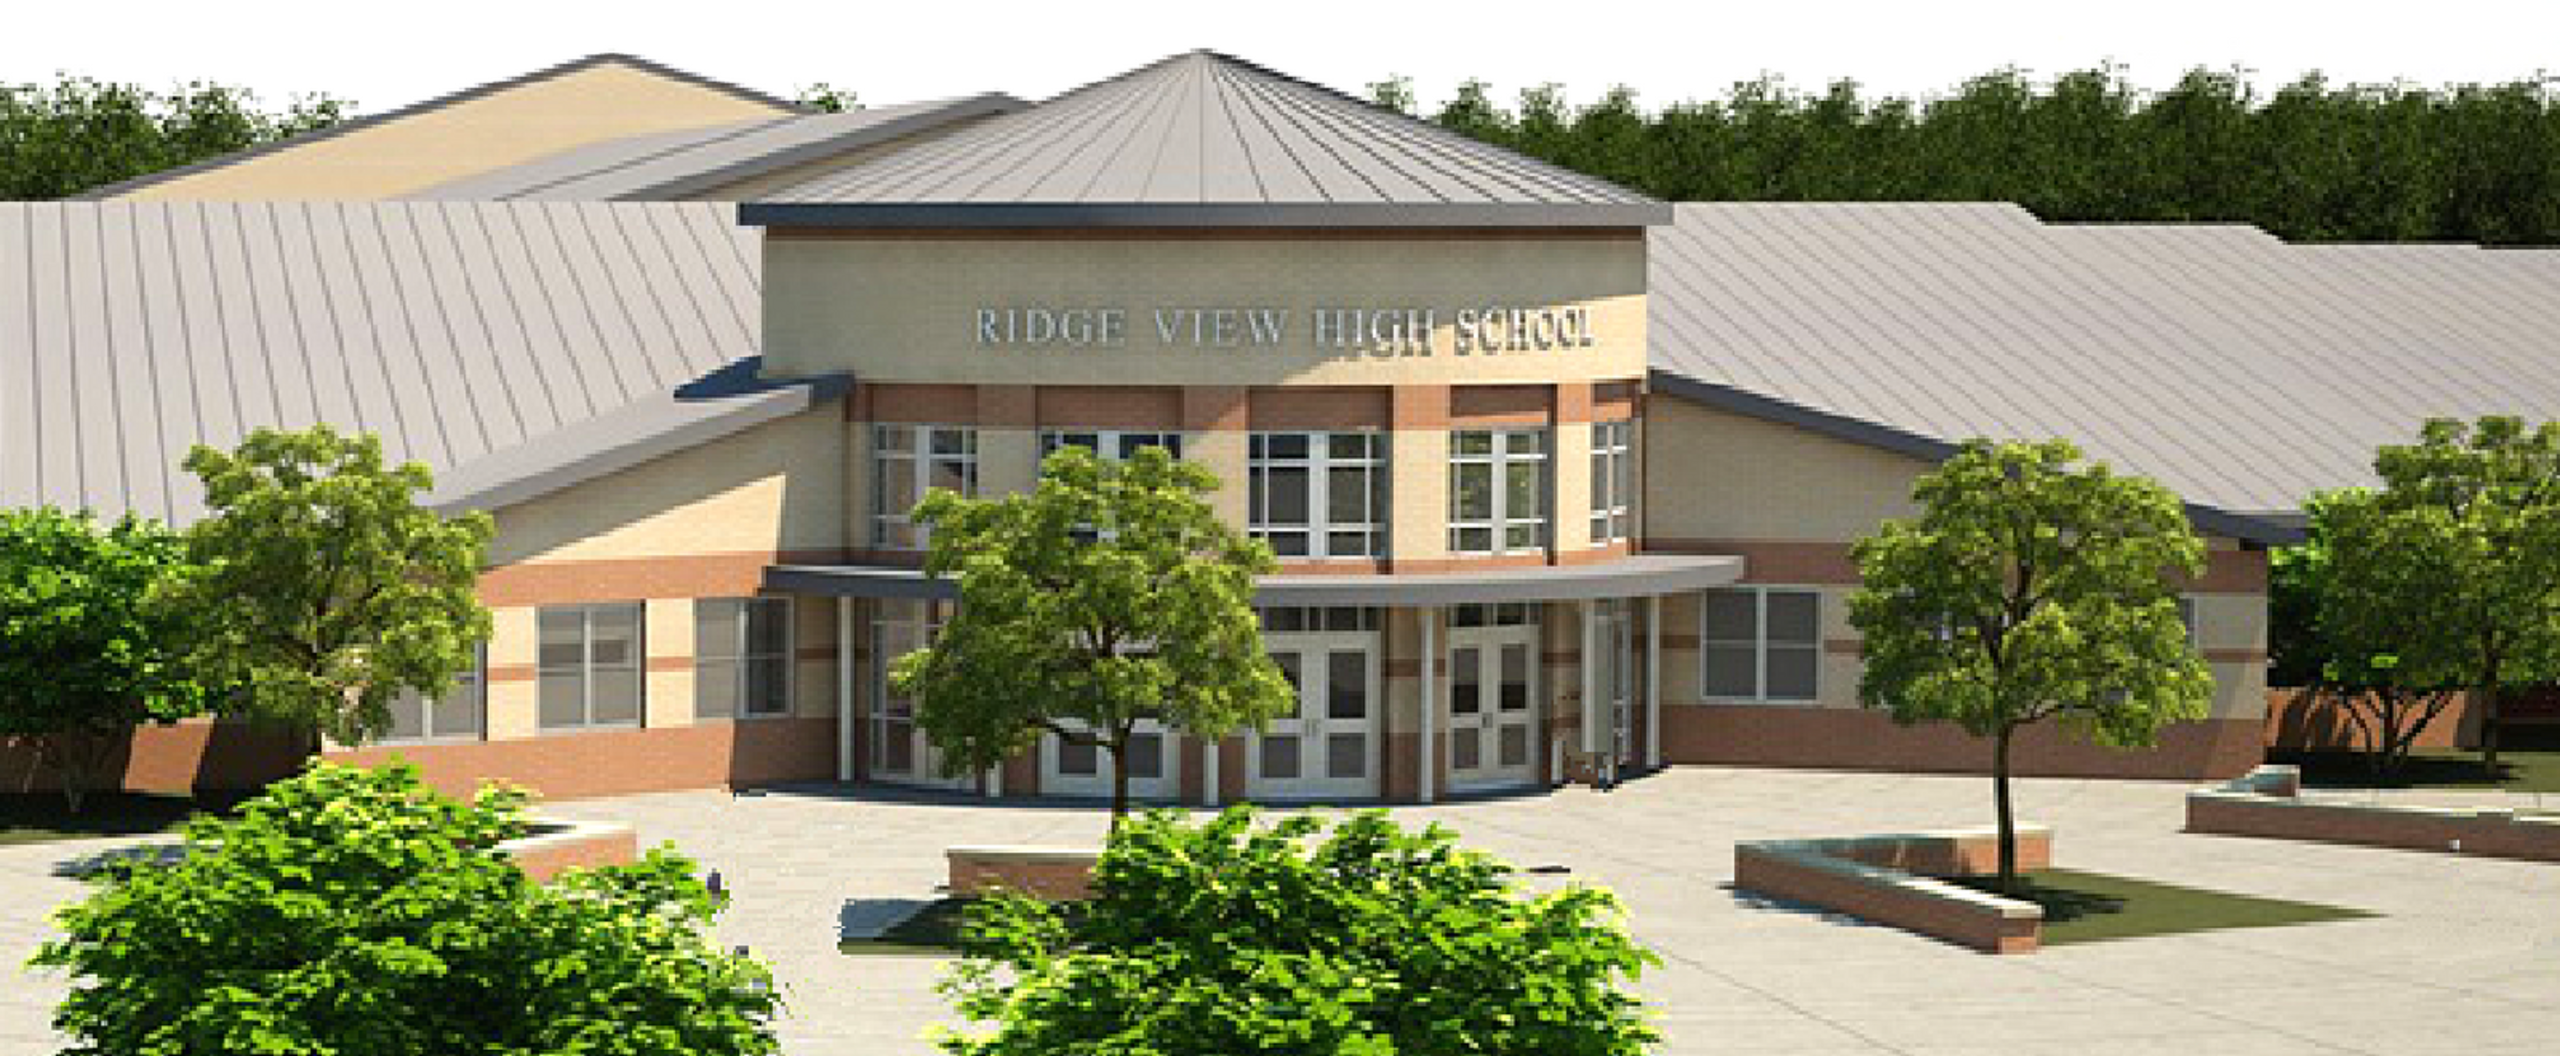 Ridge View High School